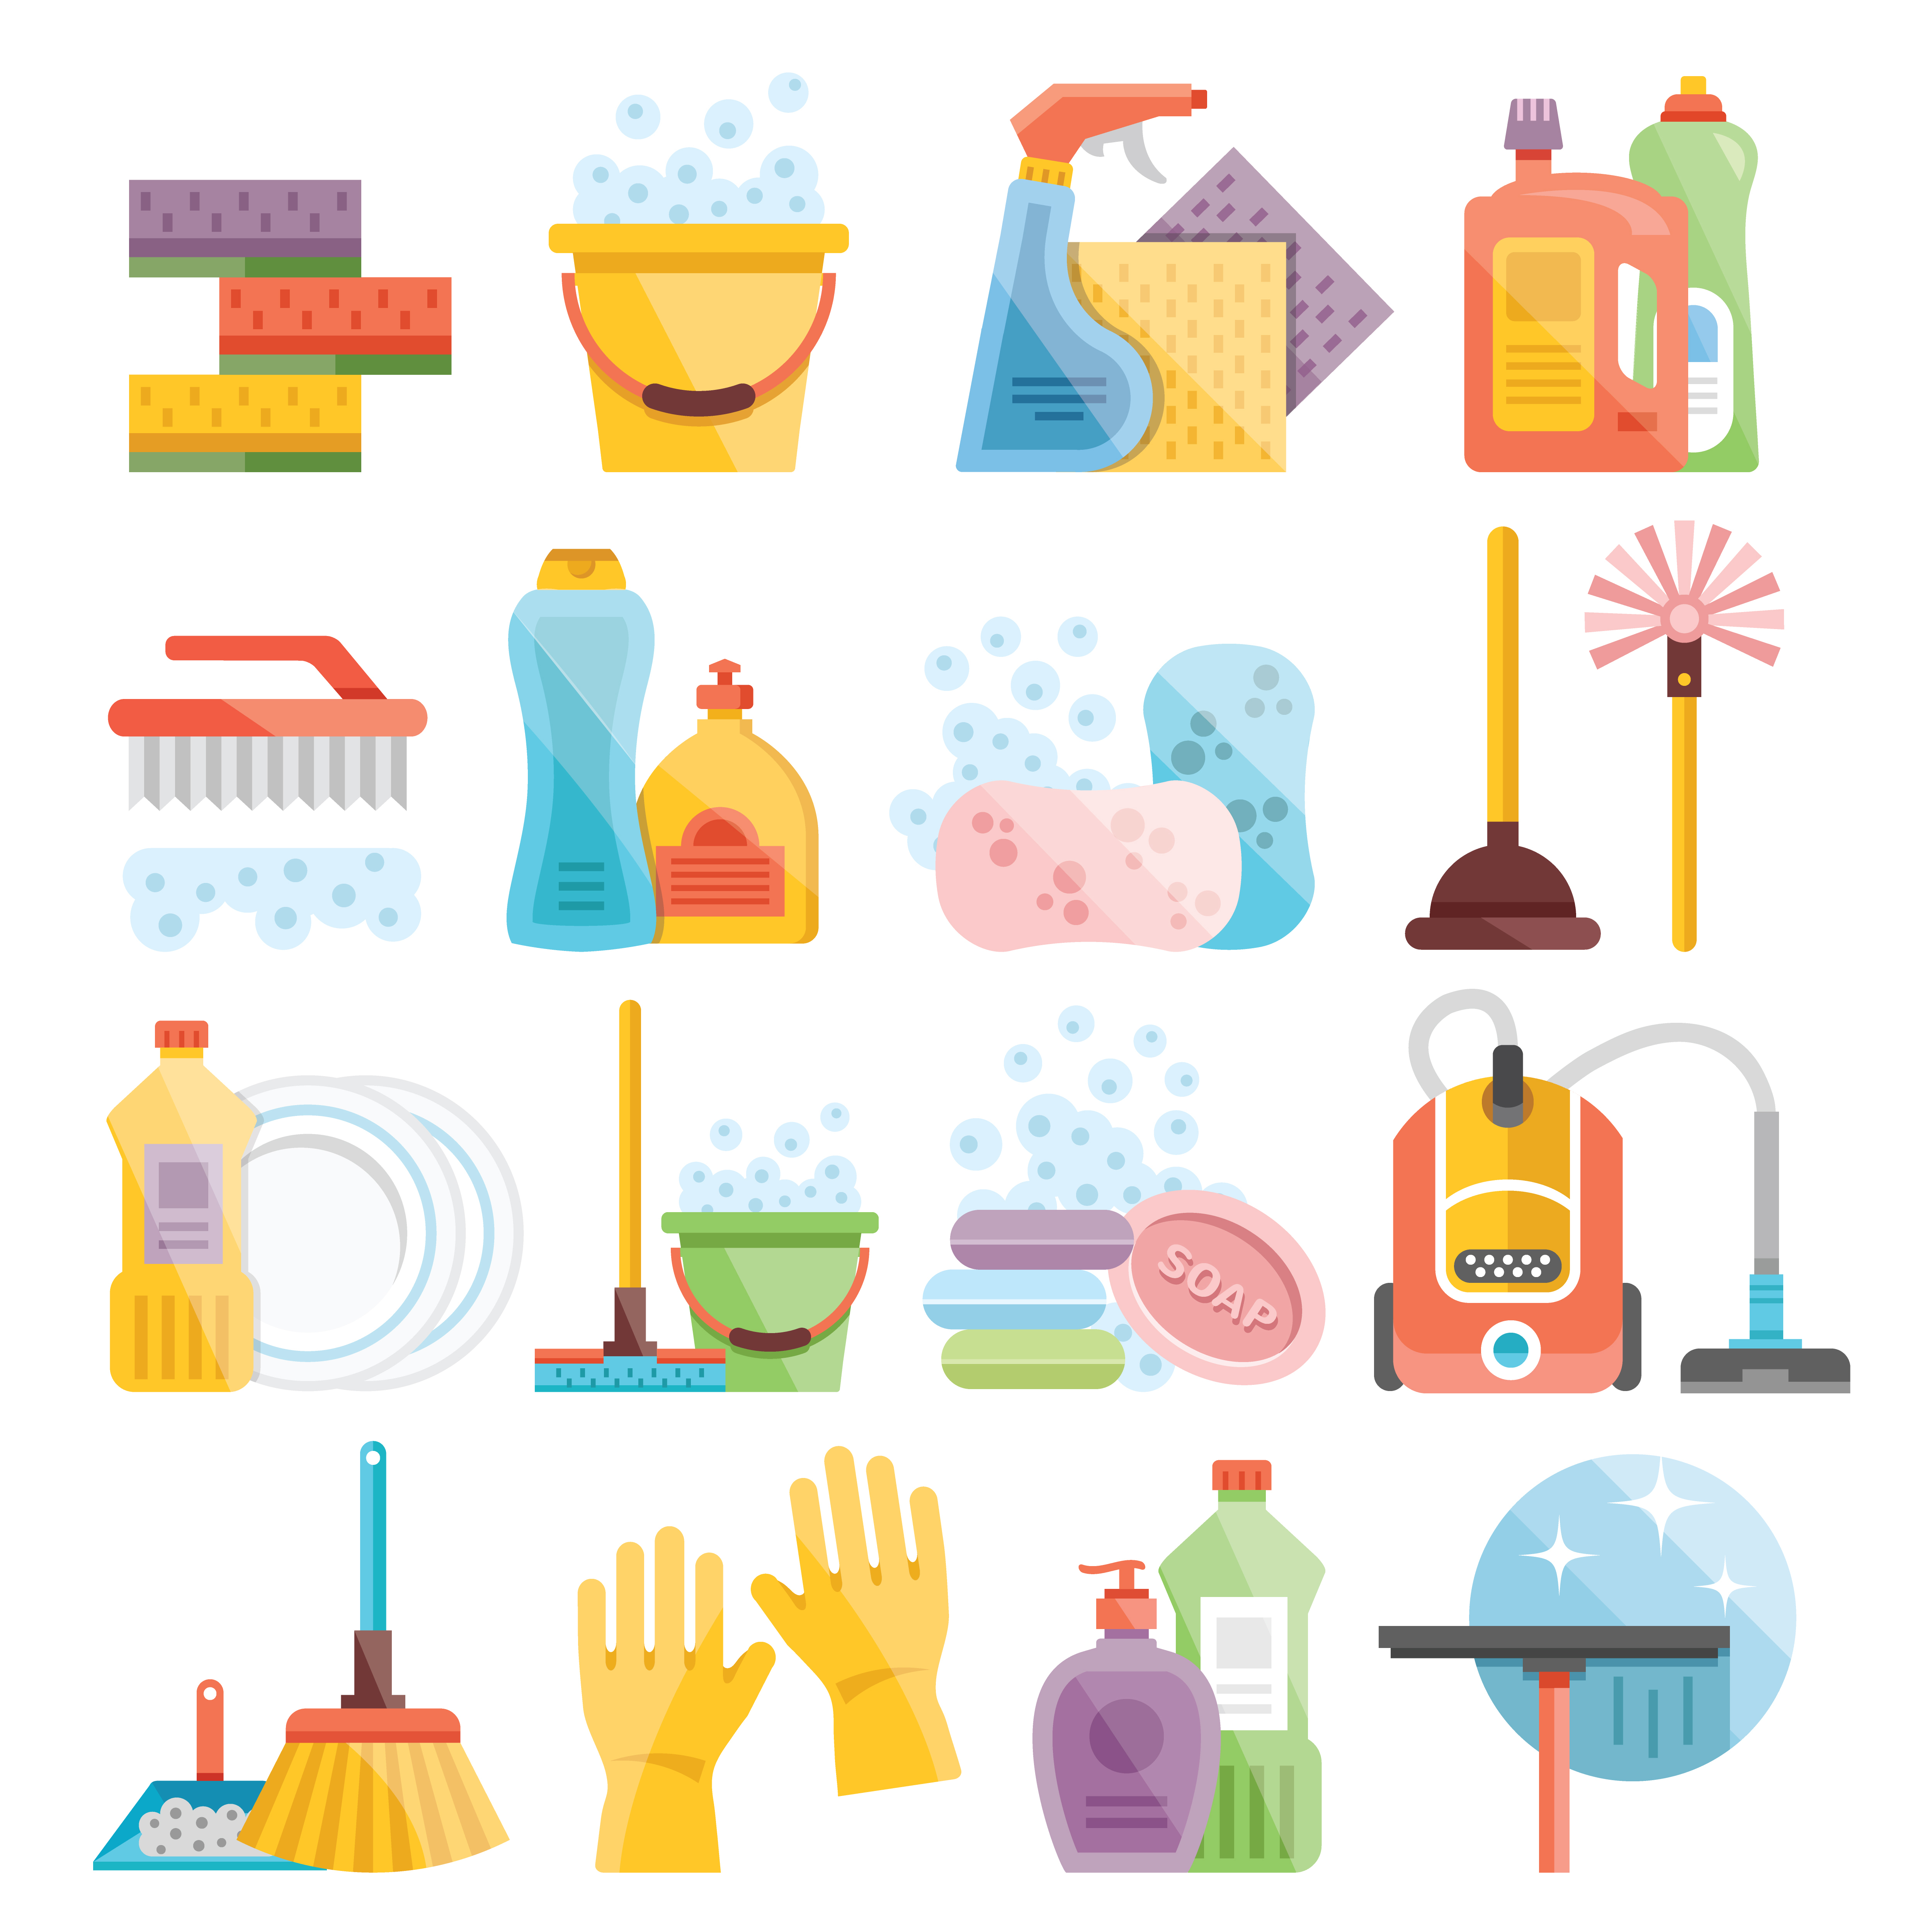 Cleaning Products For Kitchen Sink